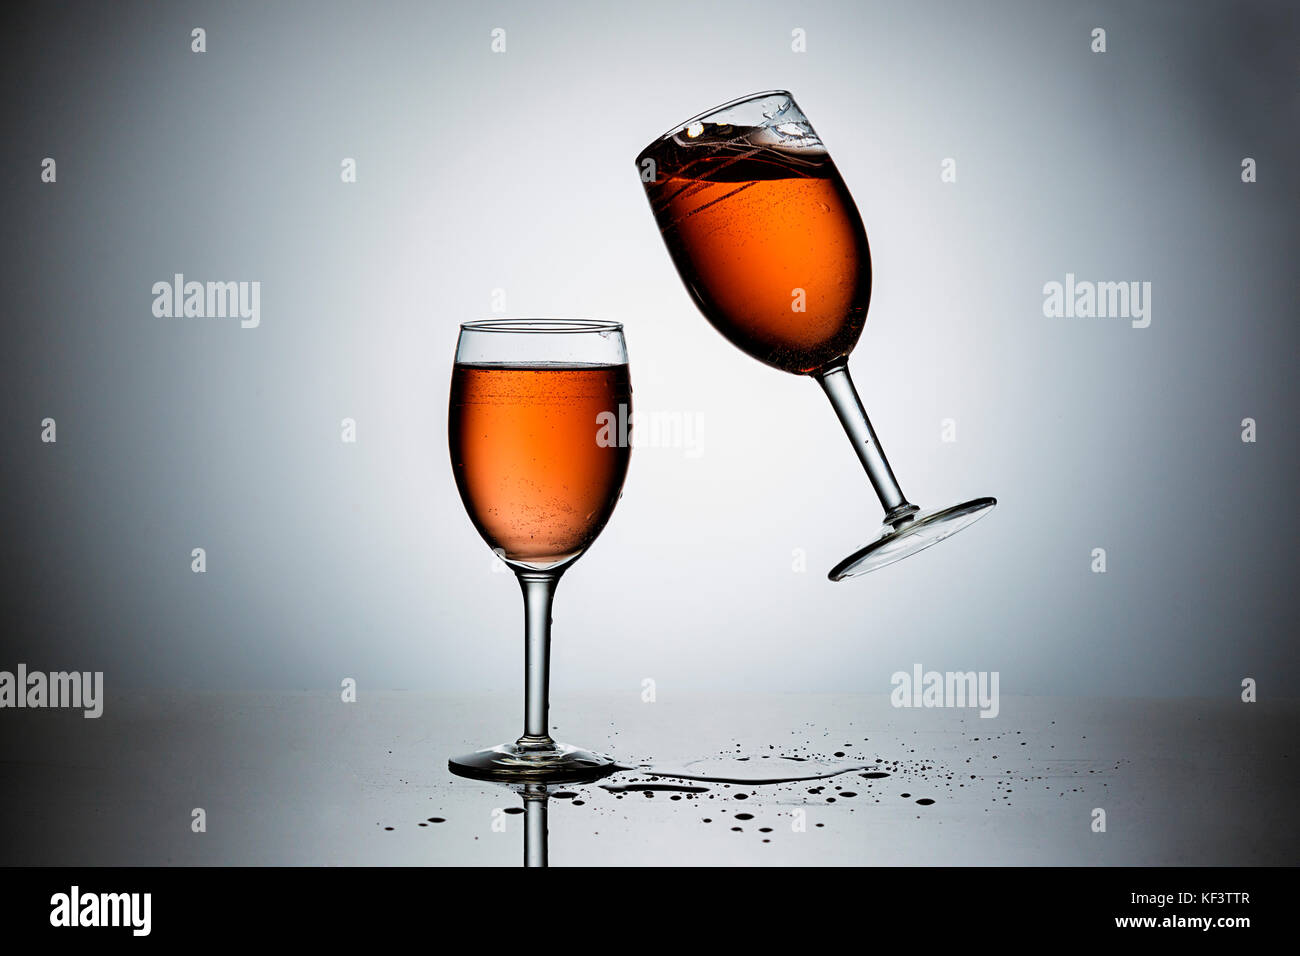 Dropping a wineglass filled with wine onto another. - Stock Image